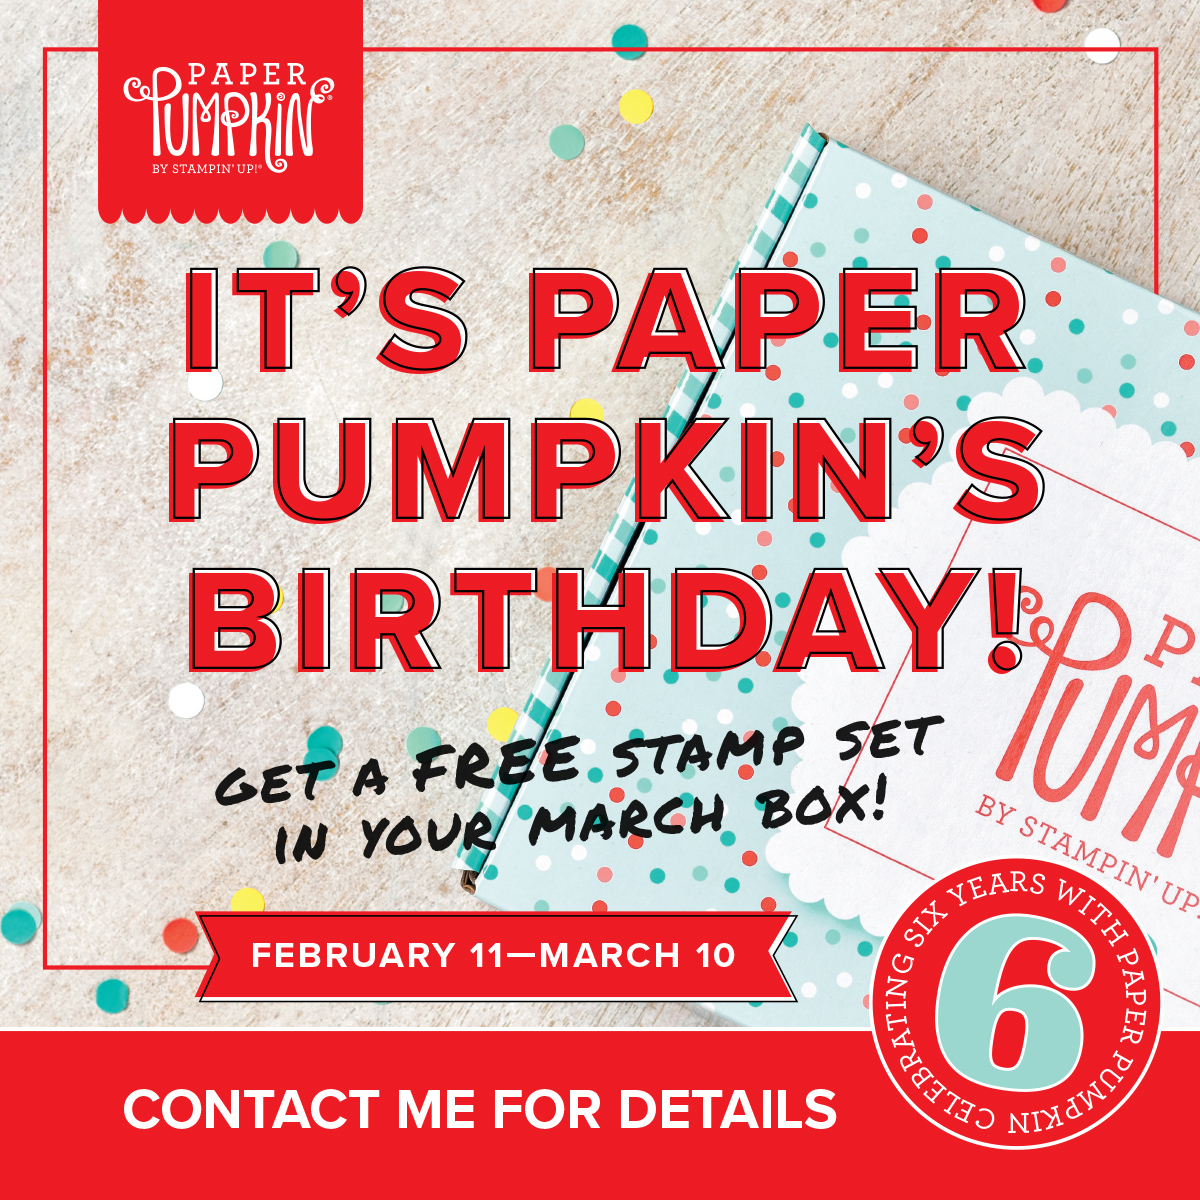 Use this link to order your paper pumpkin kit today!  https://bit.ly/2VMIxMX